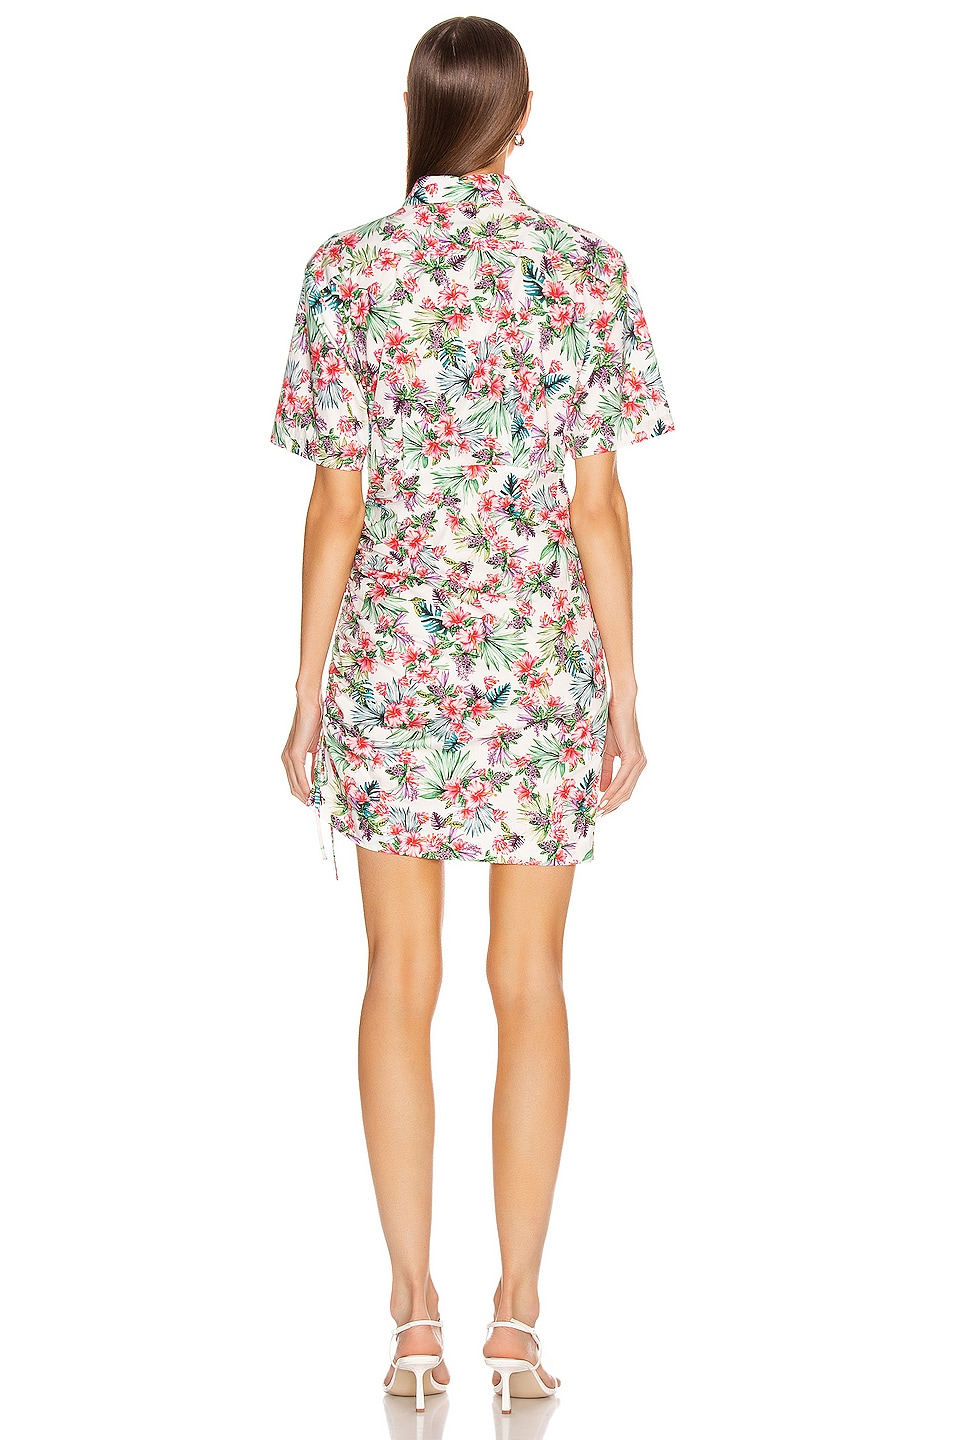 Image 5 of Les Reveries Ruched Skirt Cotton Shirt Dress in Hibiscus White